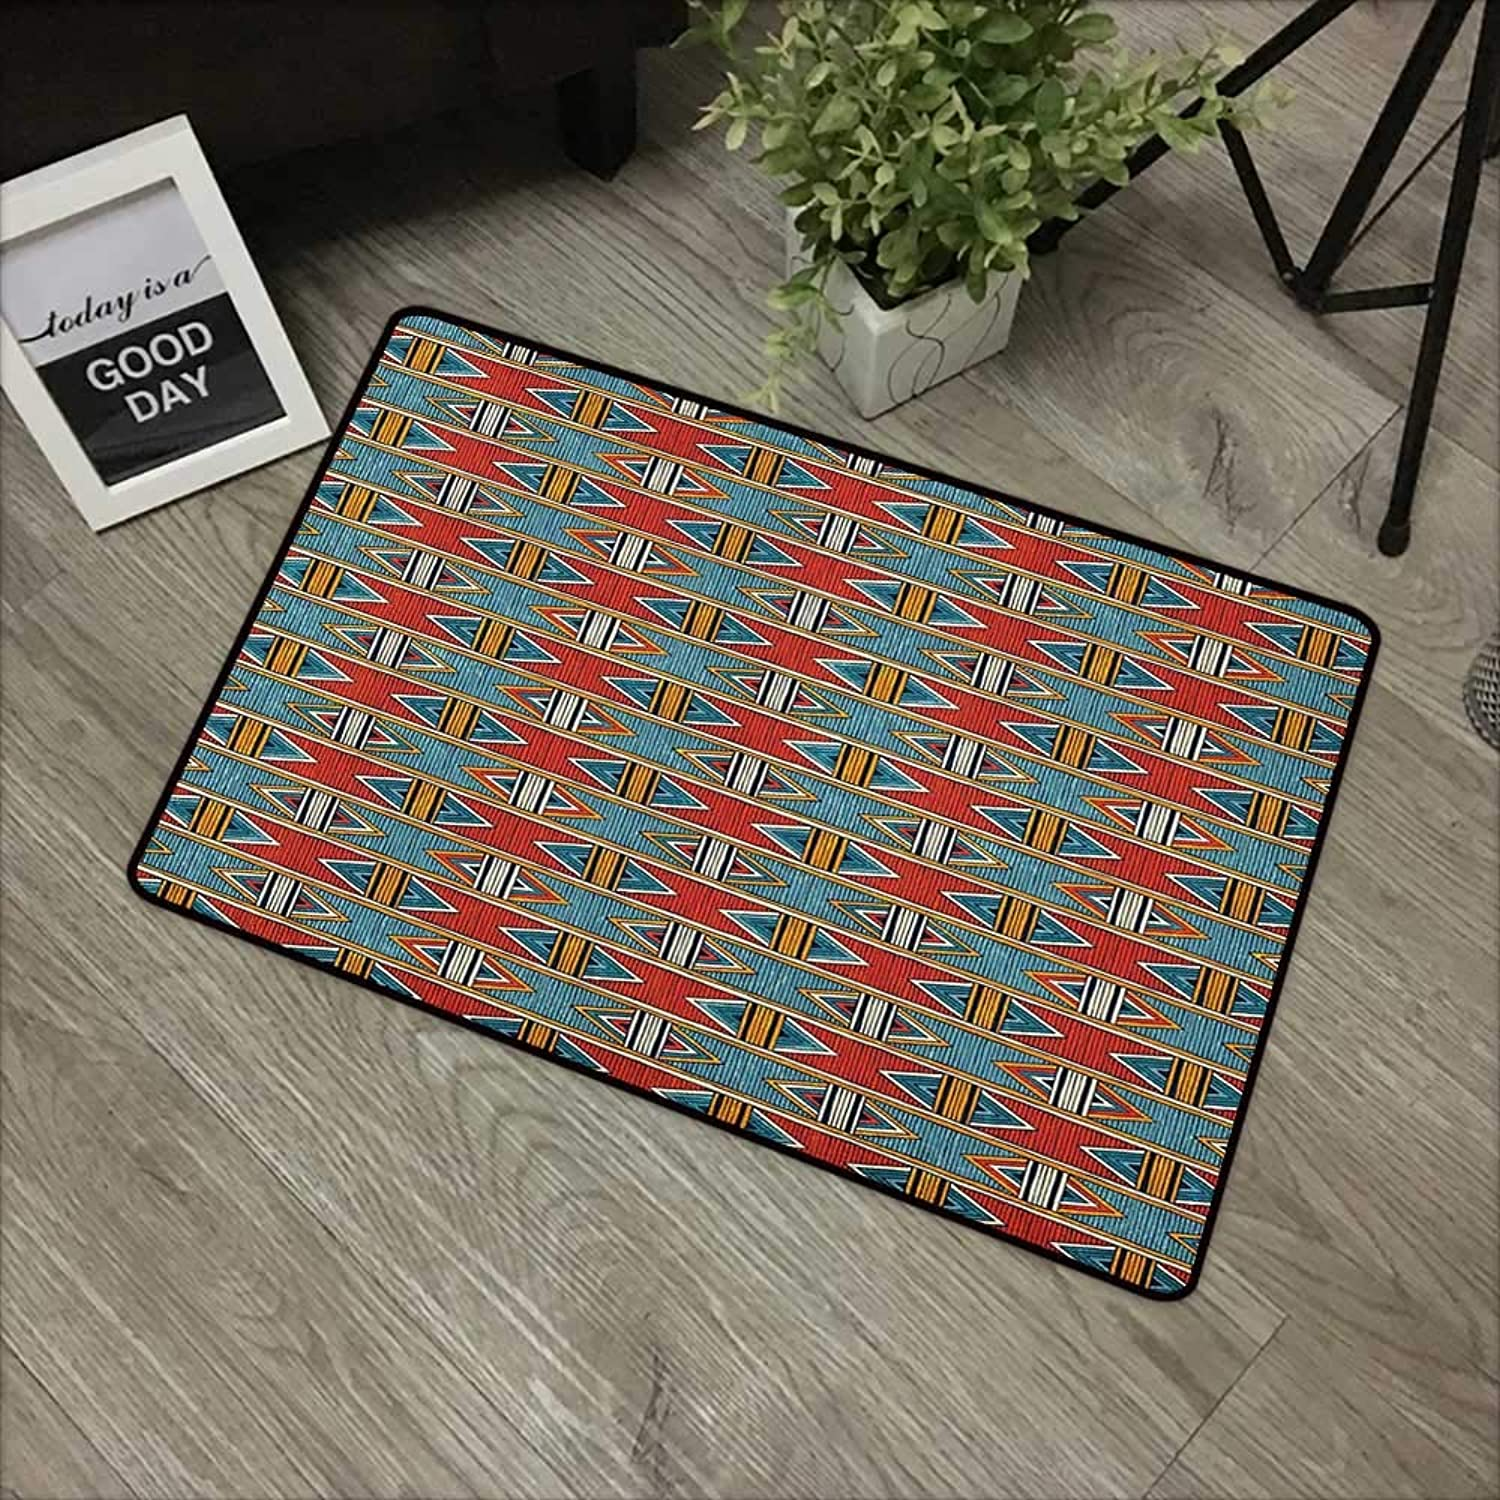 Bathroom door mat W35 x L59 INCH Kente Pattern,Tribal Traditional Triangles and Stripes Indigenous Native Cultural Heritage, Multicolor Easy to clean, no deformation, no fading Non-slip Door Mat Carpe